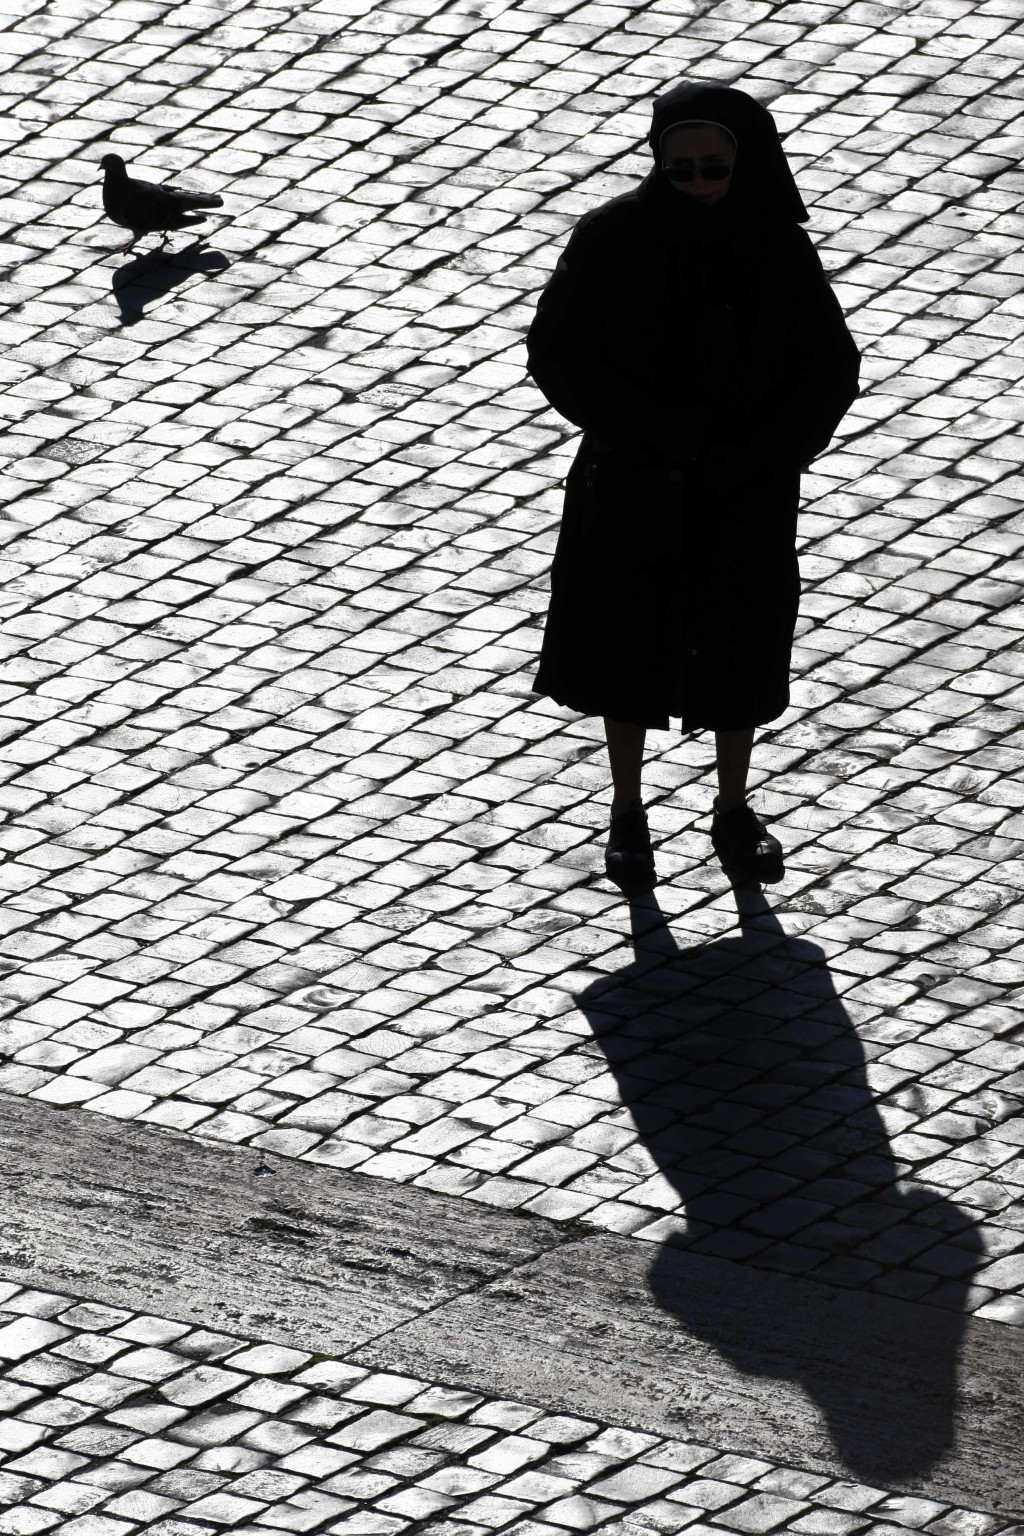 FILE - In this Sunday, Dec. 20, 2009 file photo, a nun is silhouetted in St. Peter's Square at the Vatican. Some nuns are now finding their voices, bu...